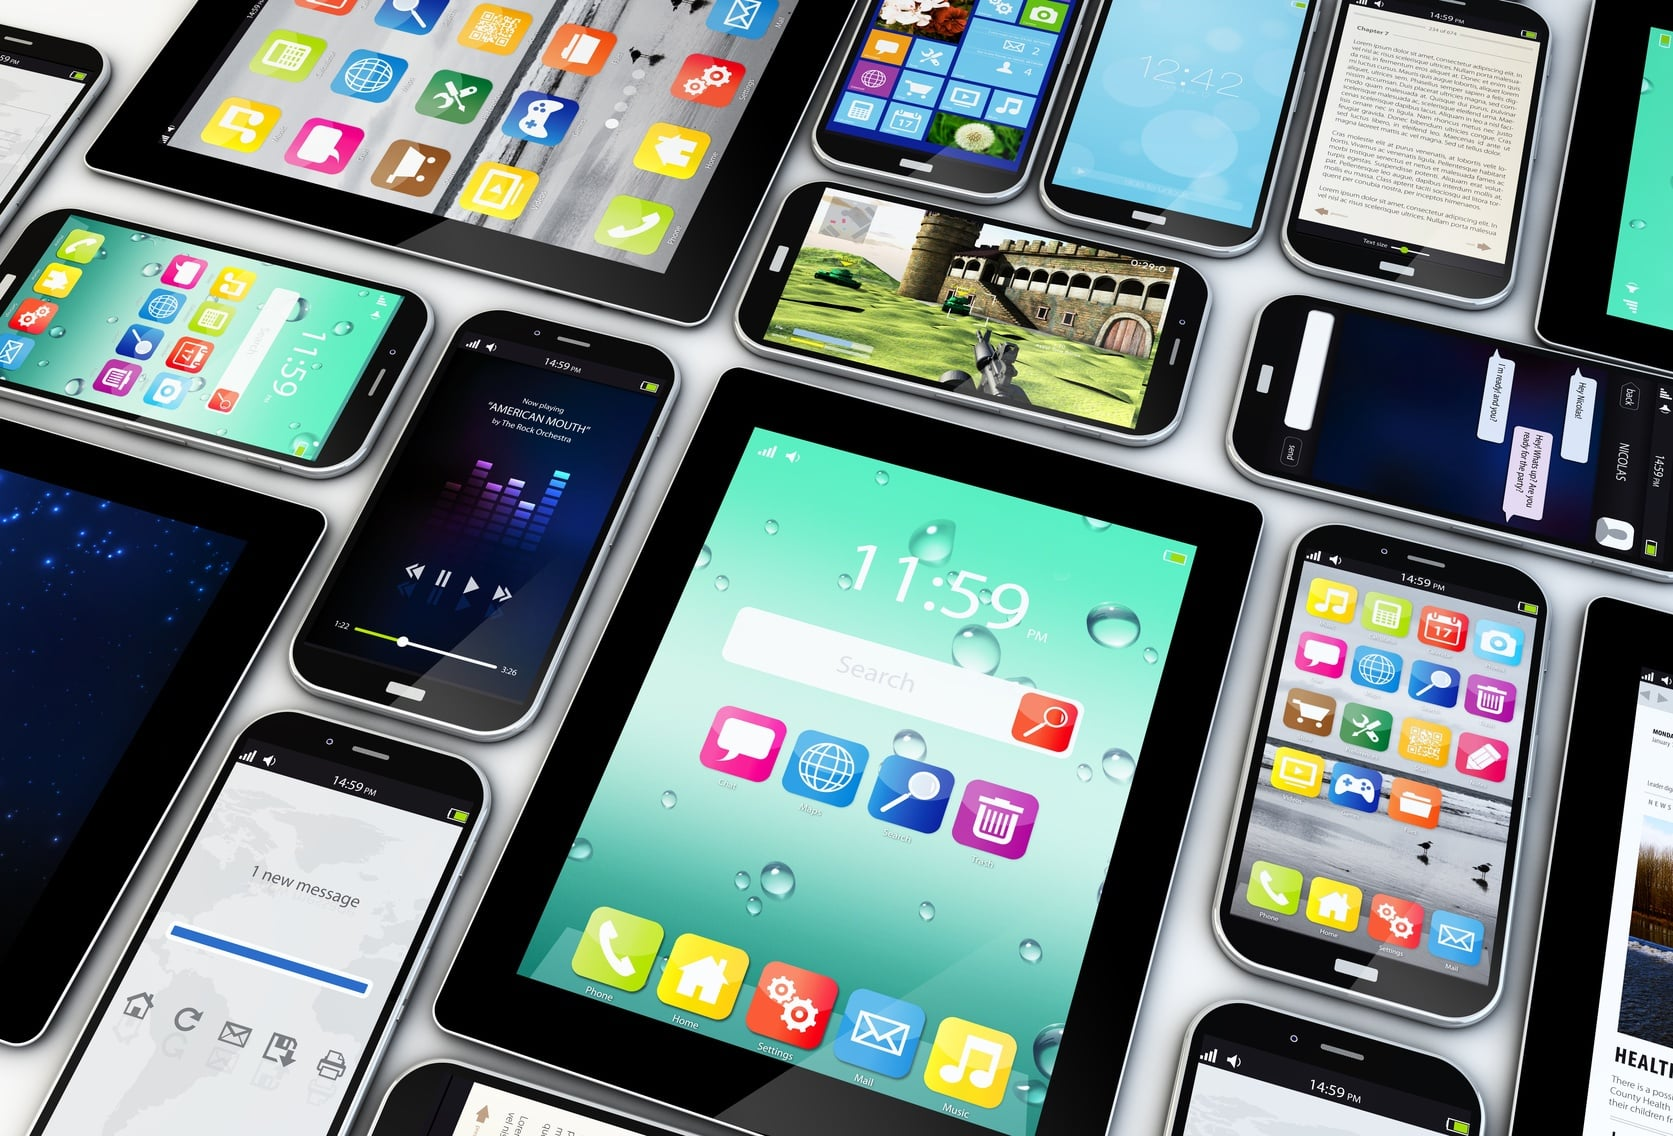 Use analytics to track audience data across mobile devices.